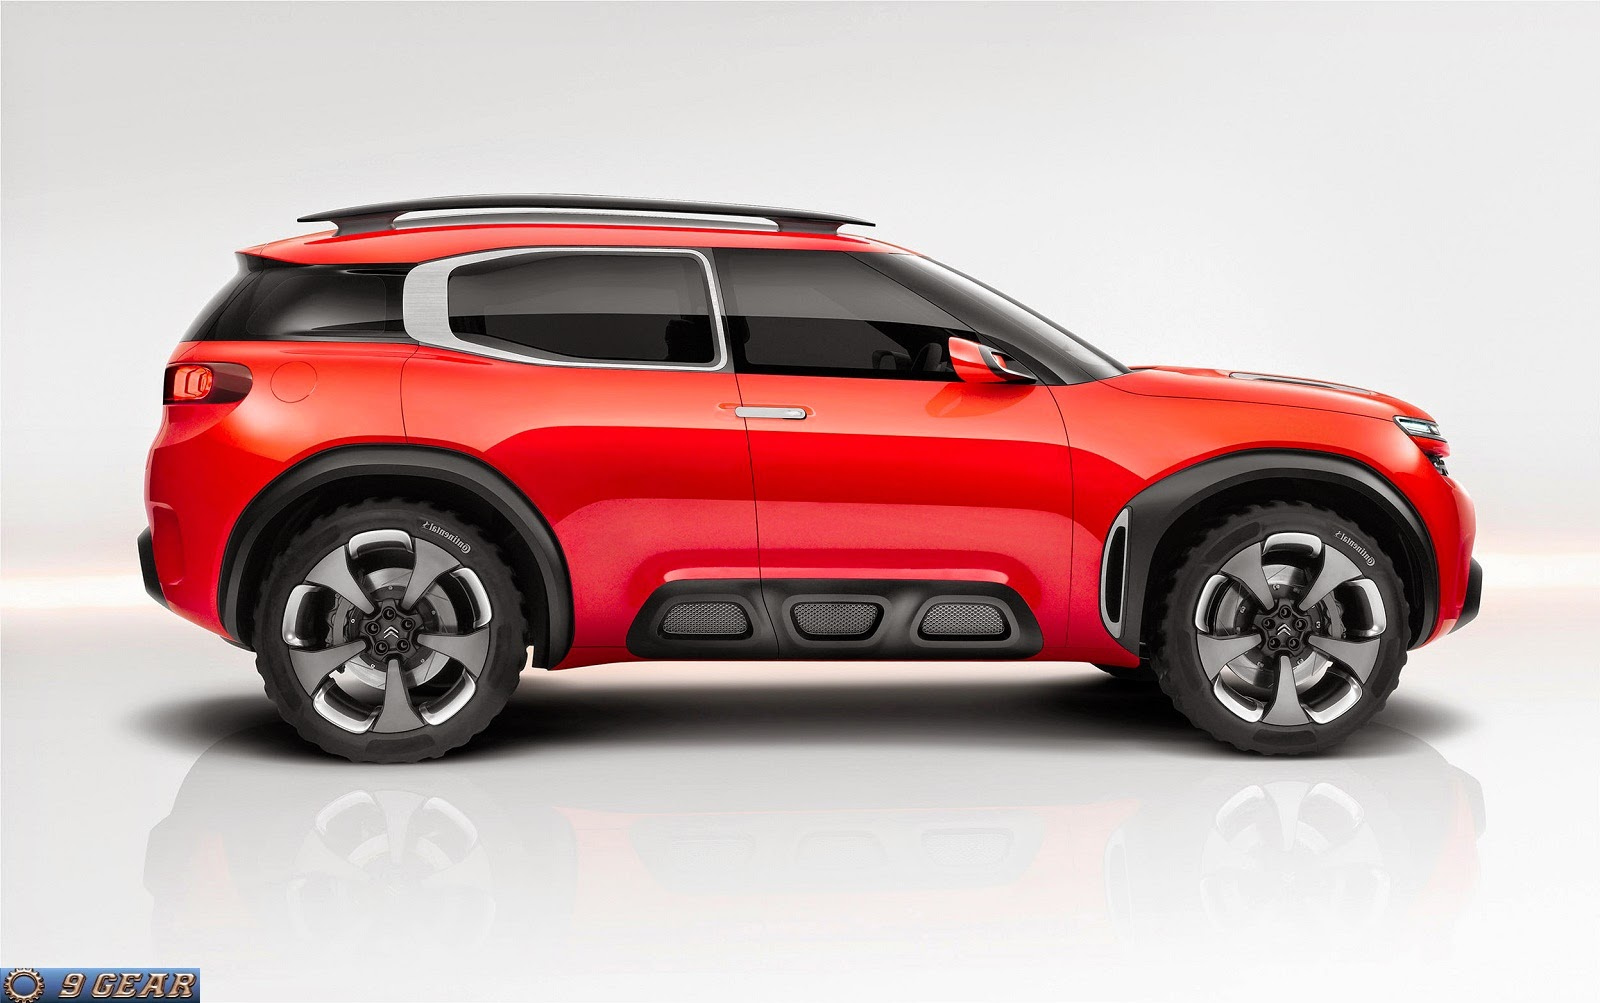 new citroen aircross suv concept revealed car reviews new car pictures for 2018 2019. Black Bedroom Furniture Sets. Home Design Ideas